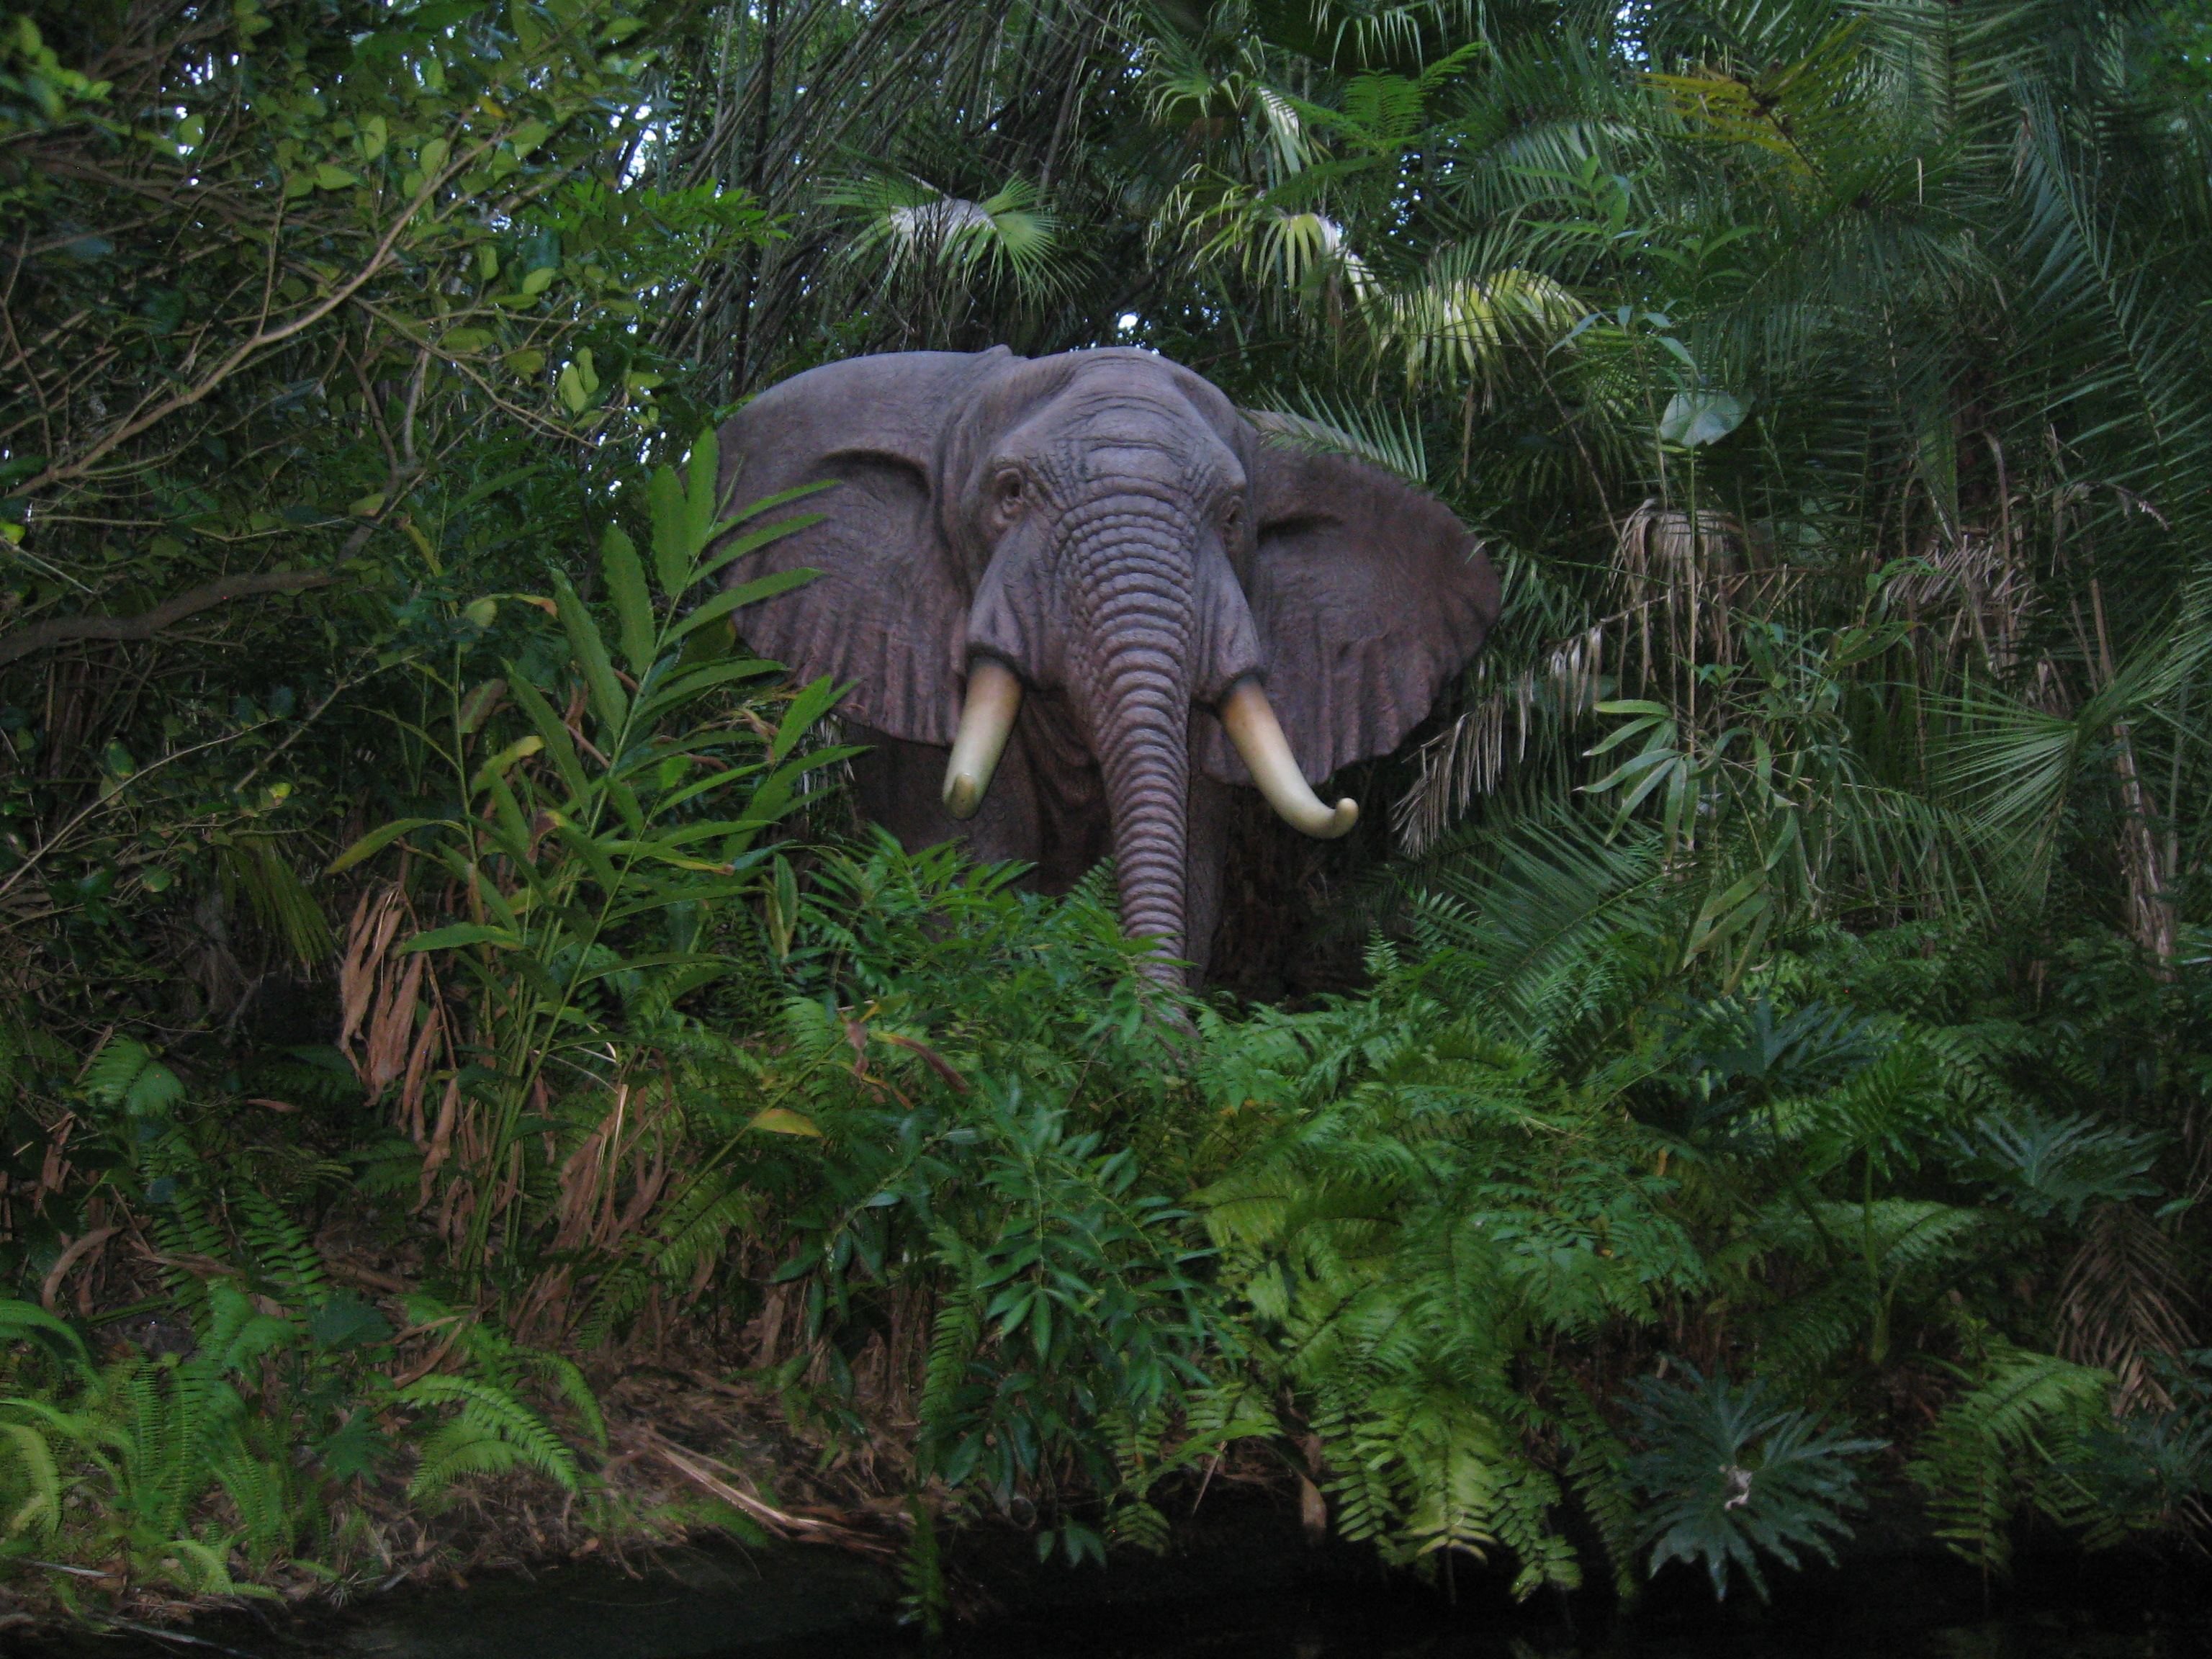 Real Jungle Animals Pictures to Pin on Pinterest - PinsDaddy